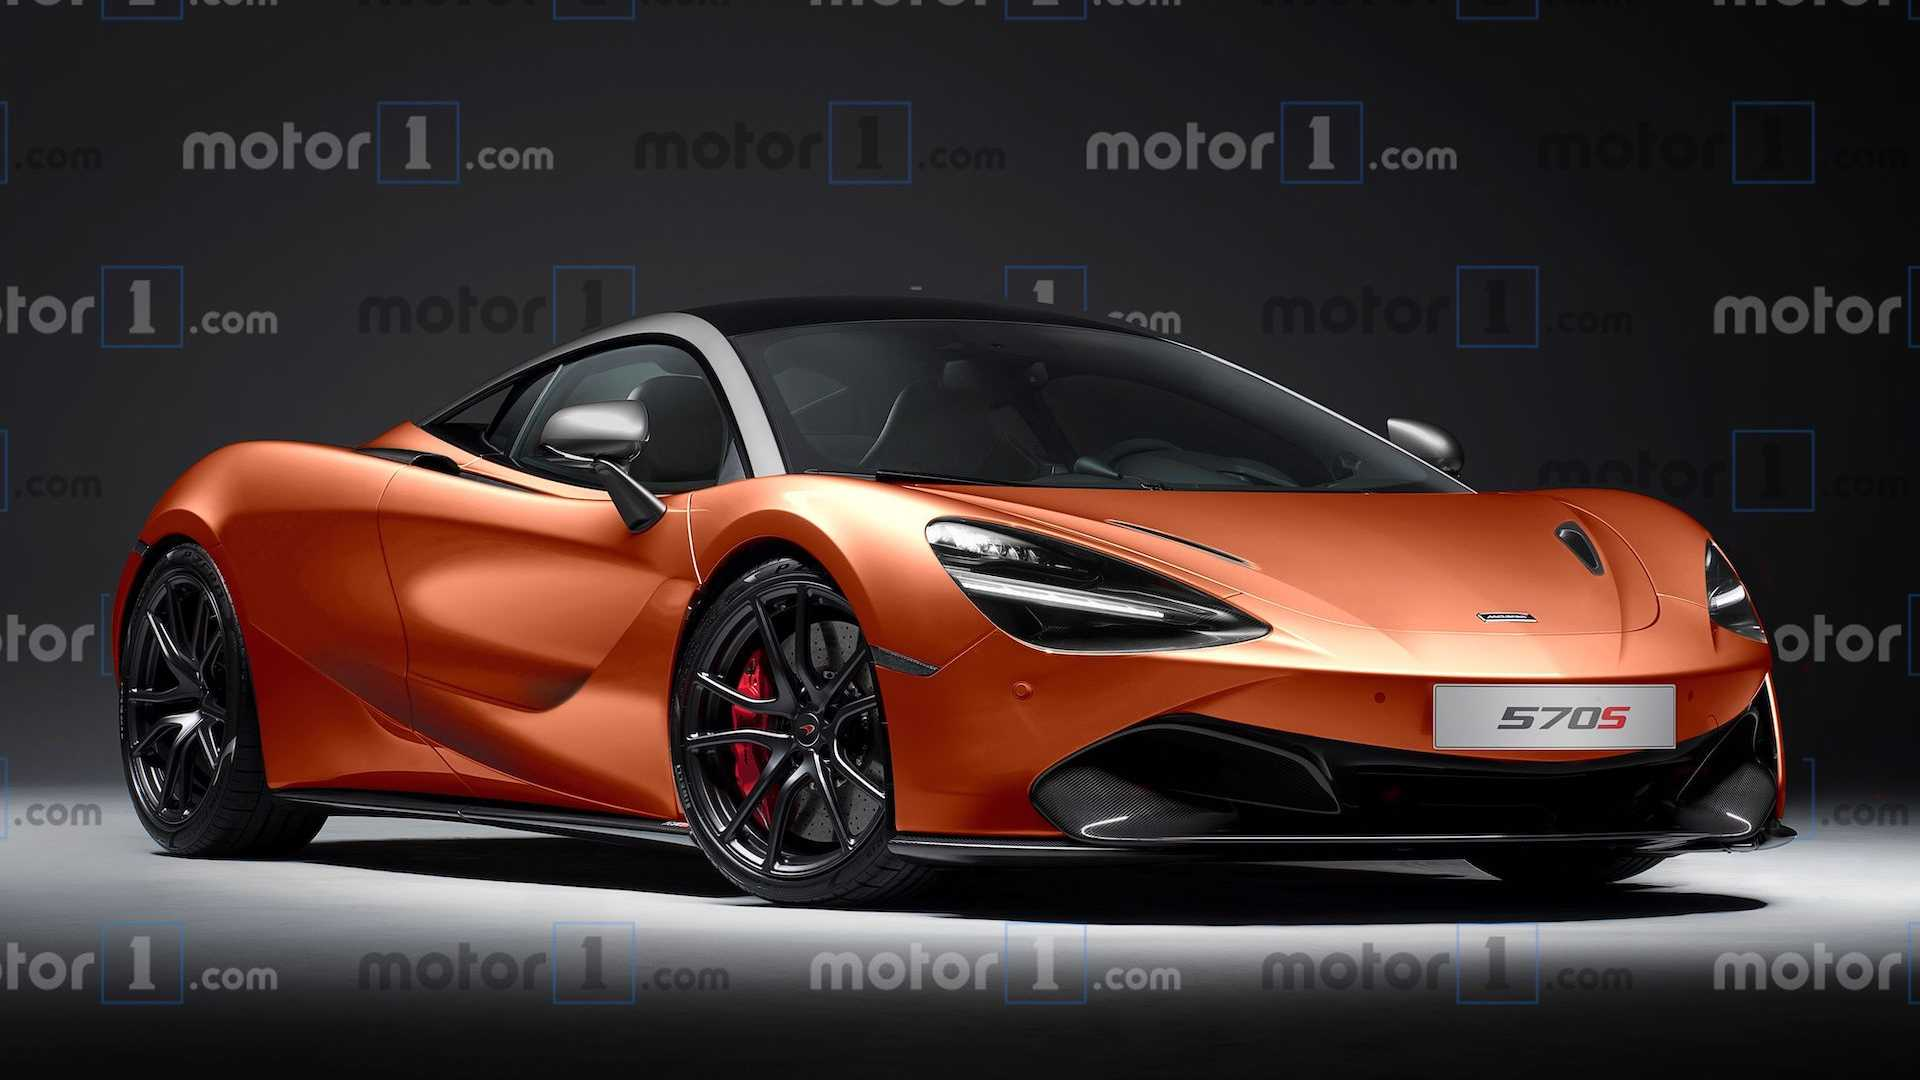 McLaren 3S Successor Envisioned With Sharp Styling, 3S Cues